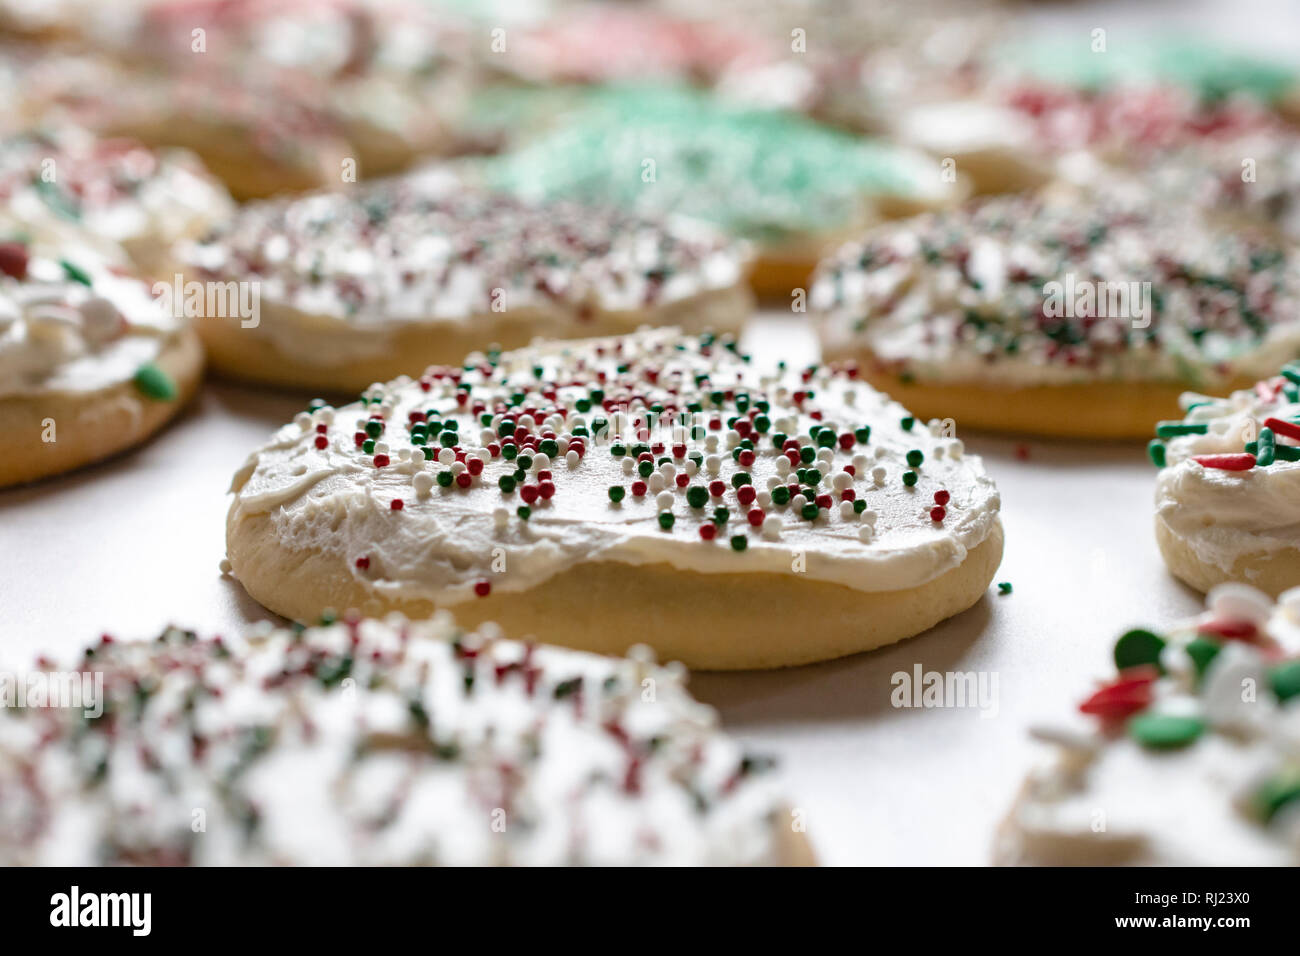 Christmas Sugar Cookies Frosted With Sprinkles Close Up View Stock